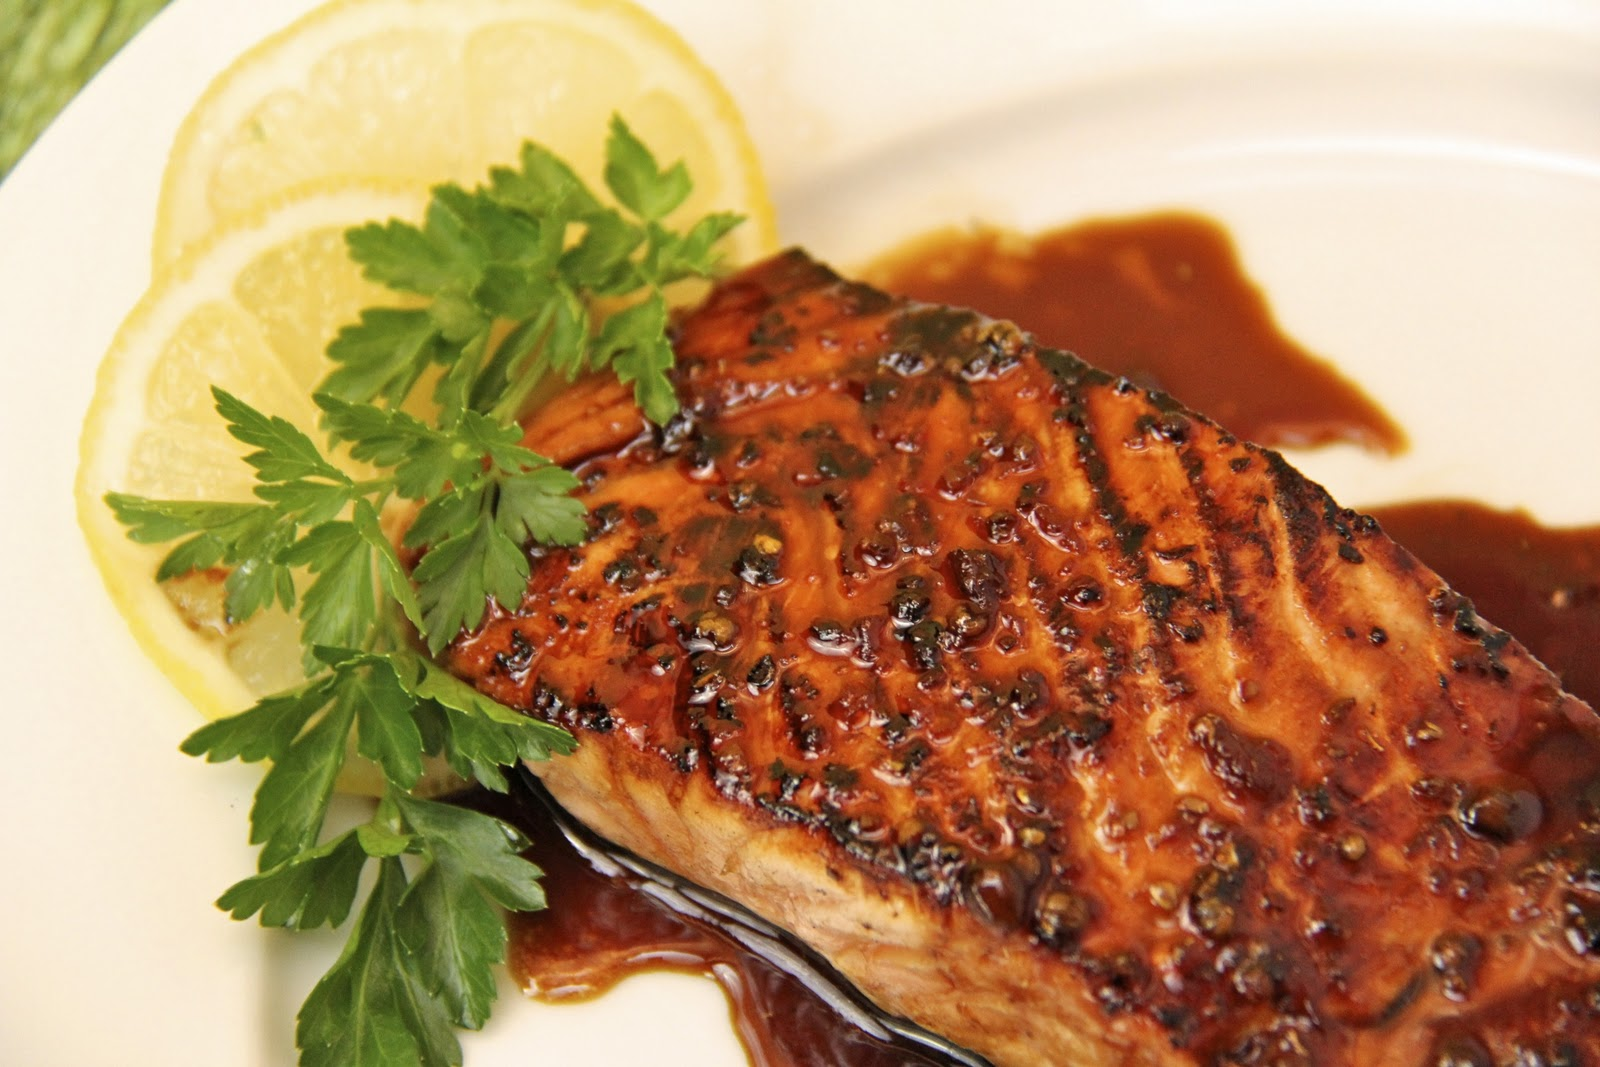 Sweet 'n' Hot Glazed Salmon (with images, tweets) · SamVan1 ...